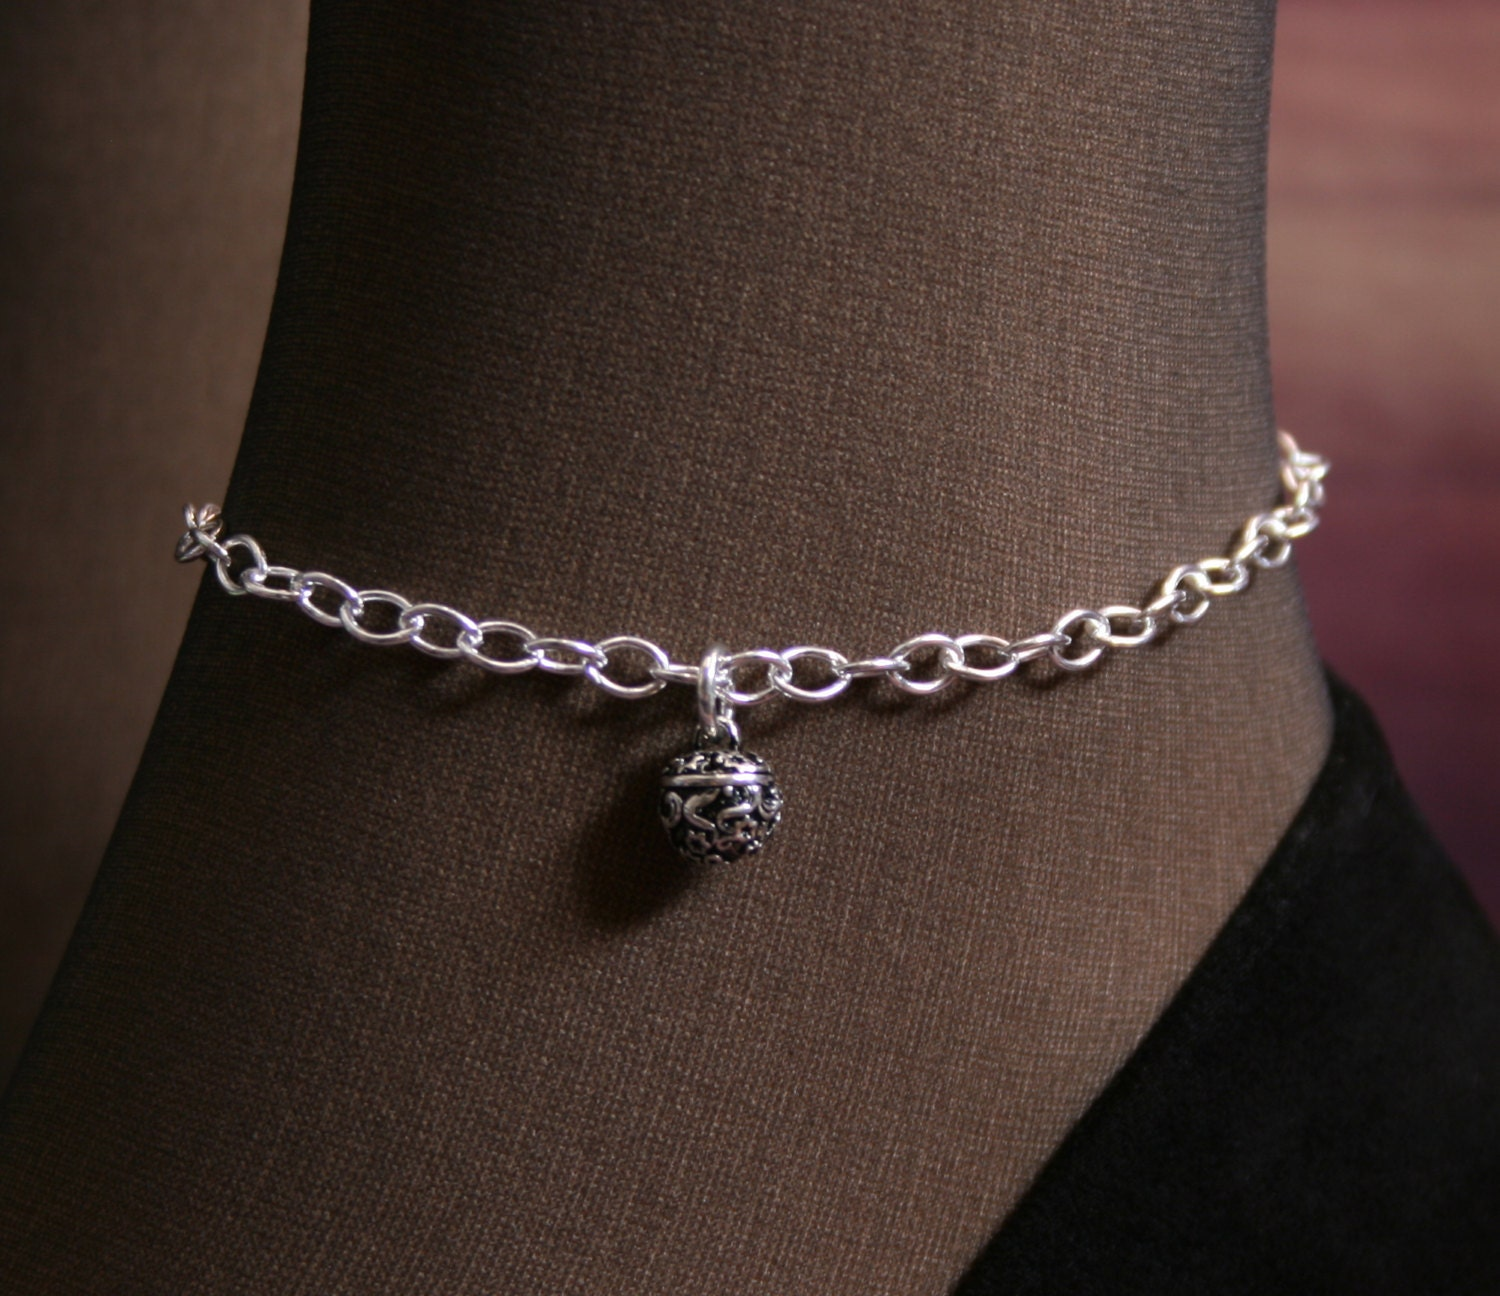 inch anklet fits pin read teeny silver ankles flowers with sterling